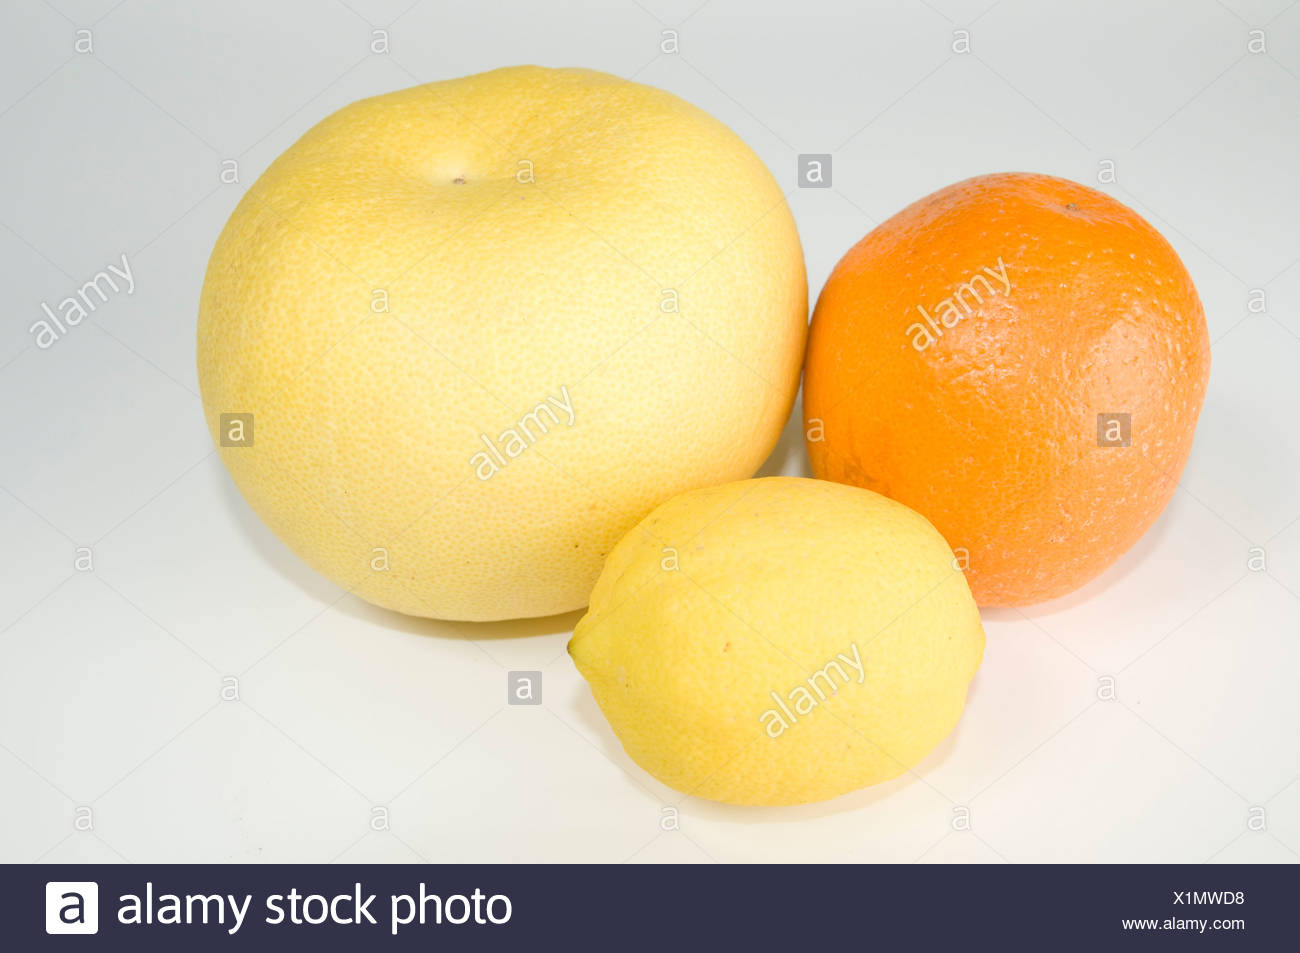 Cutout of Citrus Fruit on white background including an Orange a Lemon and a Grapefruit - Stock Image